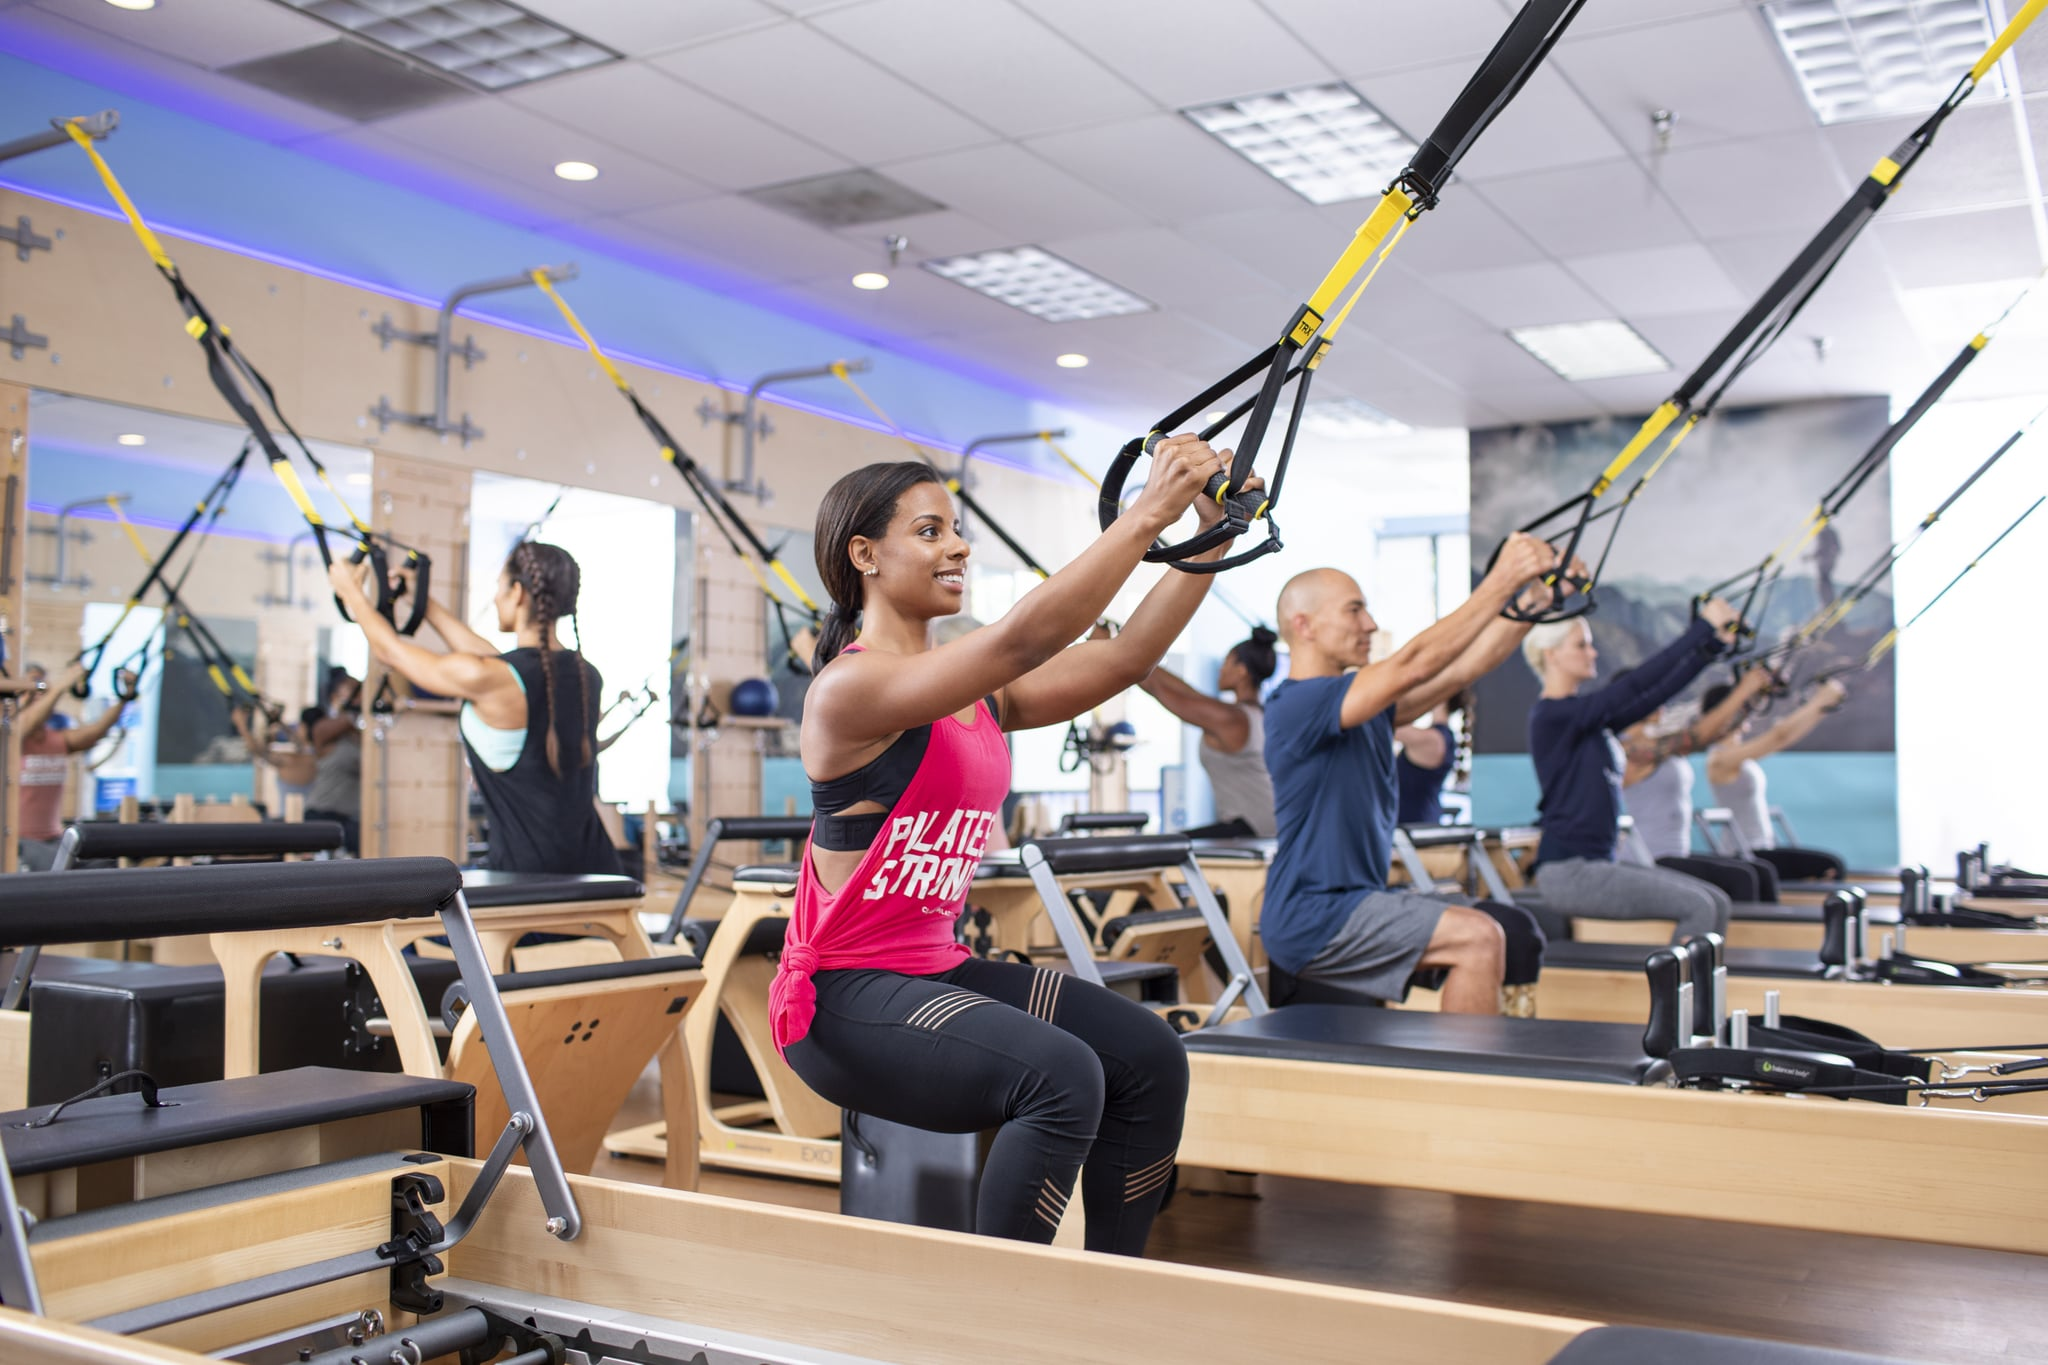 Club Pilates Prices 2020 Popsugar Fitness